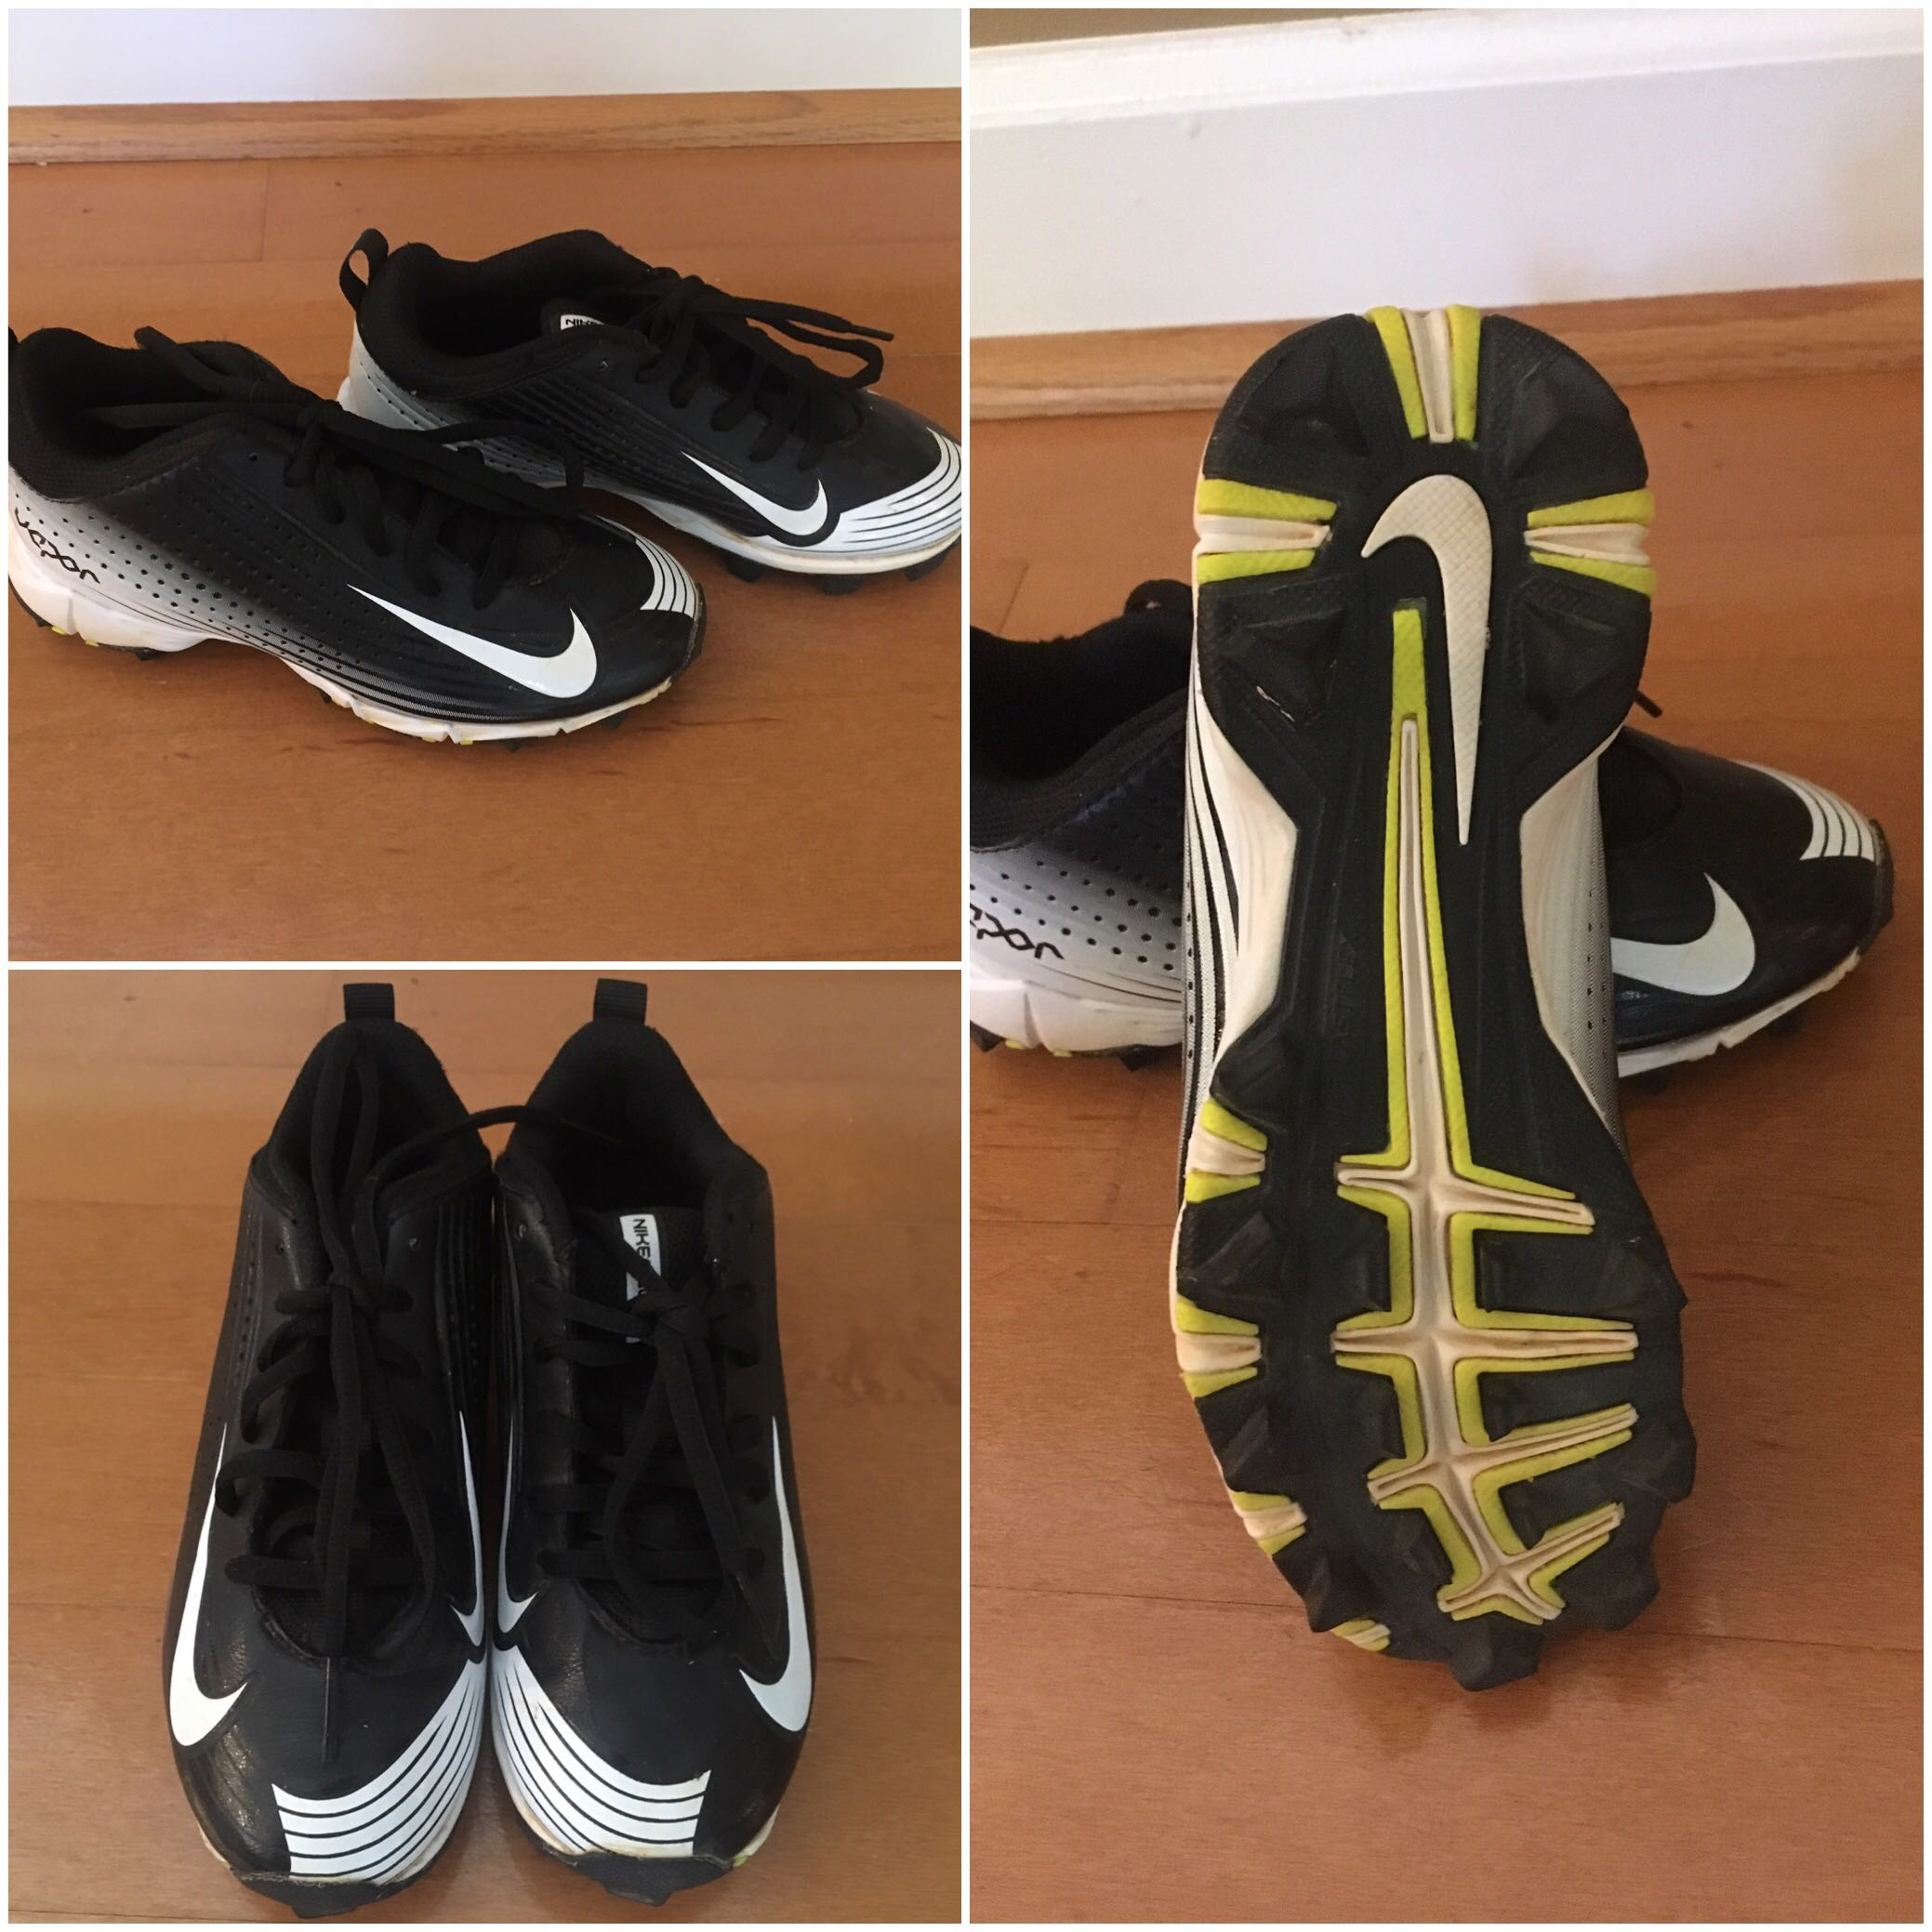 Nike Vapor Boys Baseball Cleats - size 13C